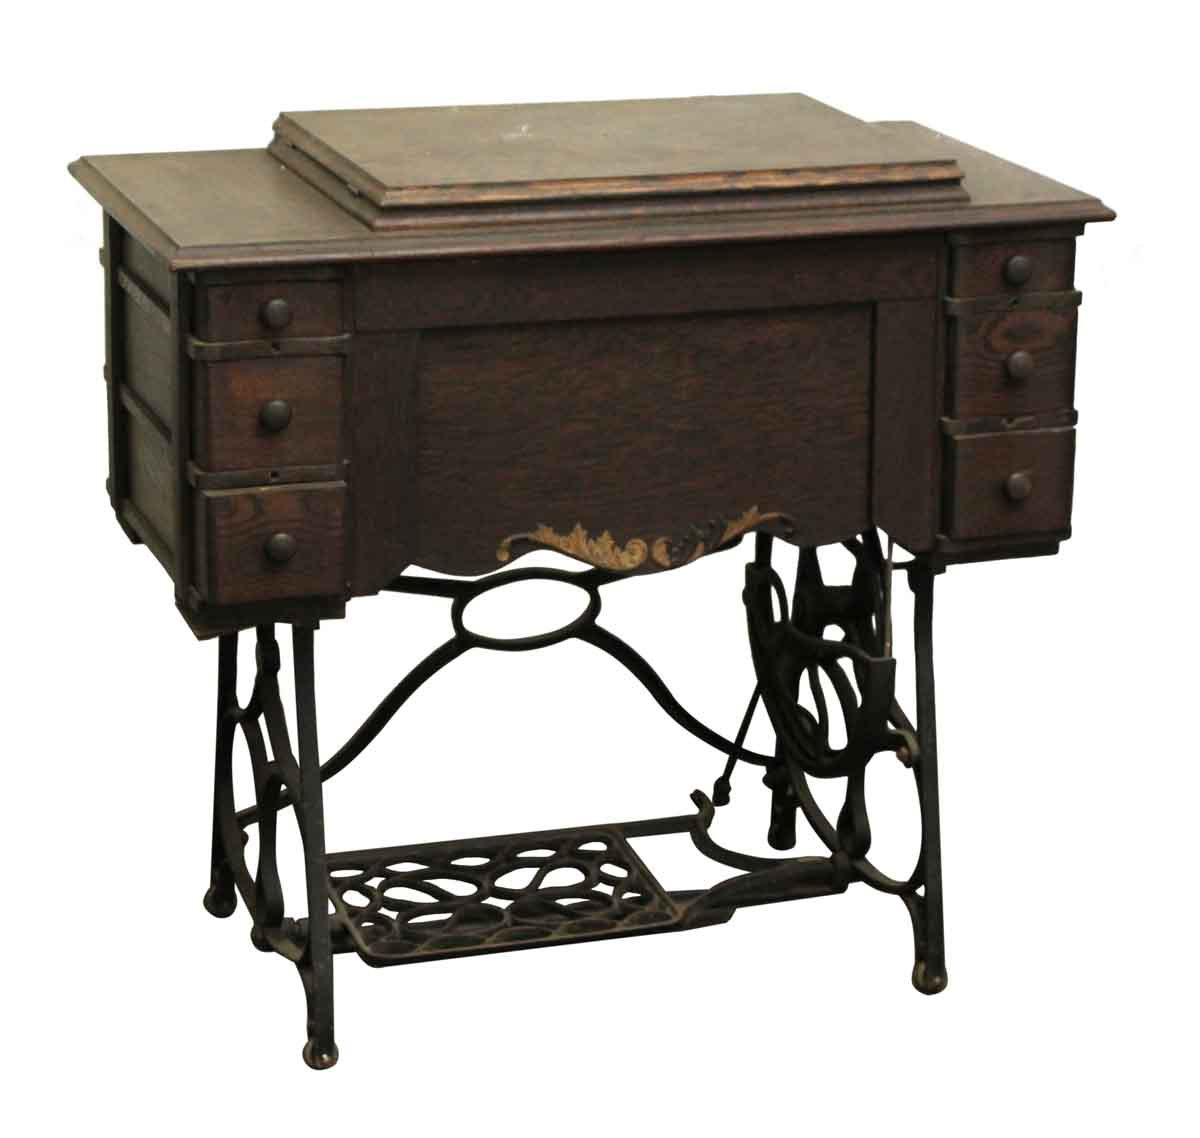 Antique Sewing Machine Table With Cast